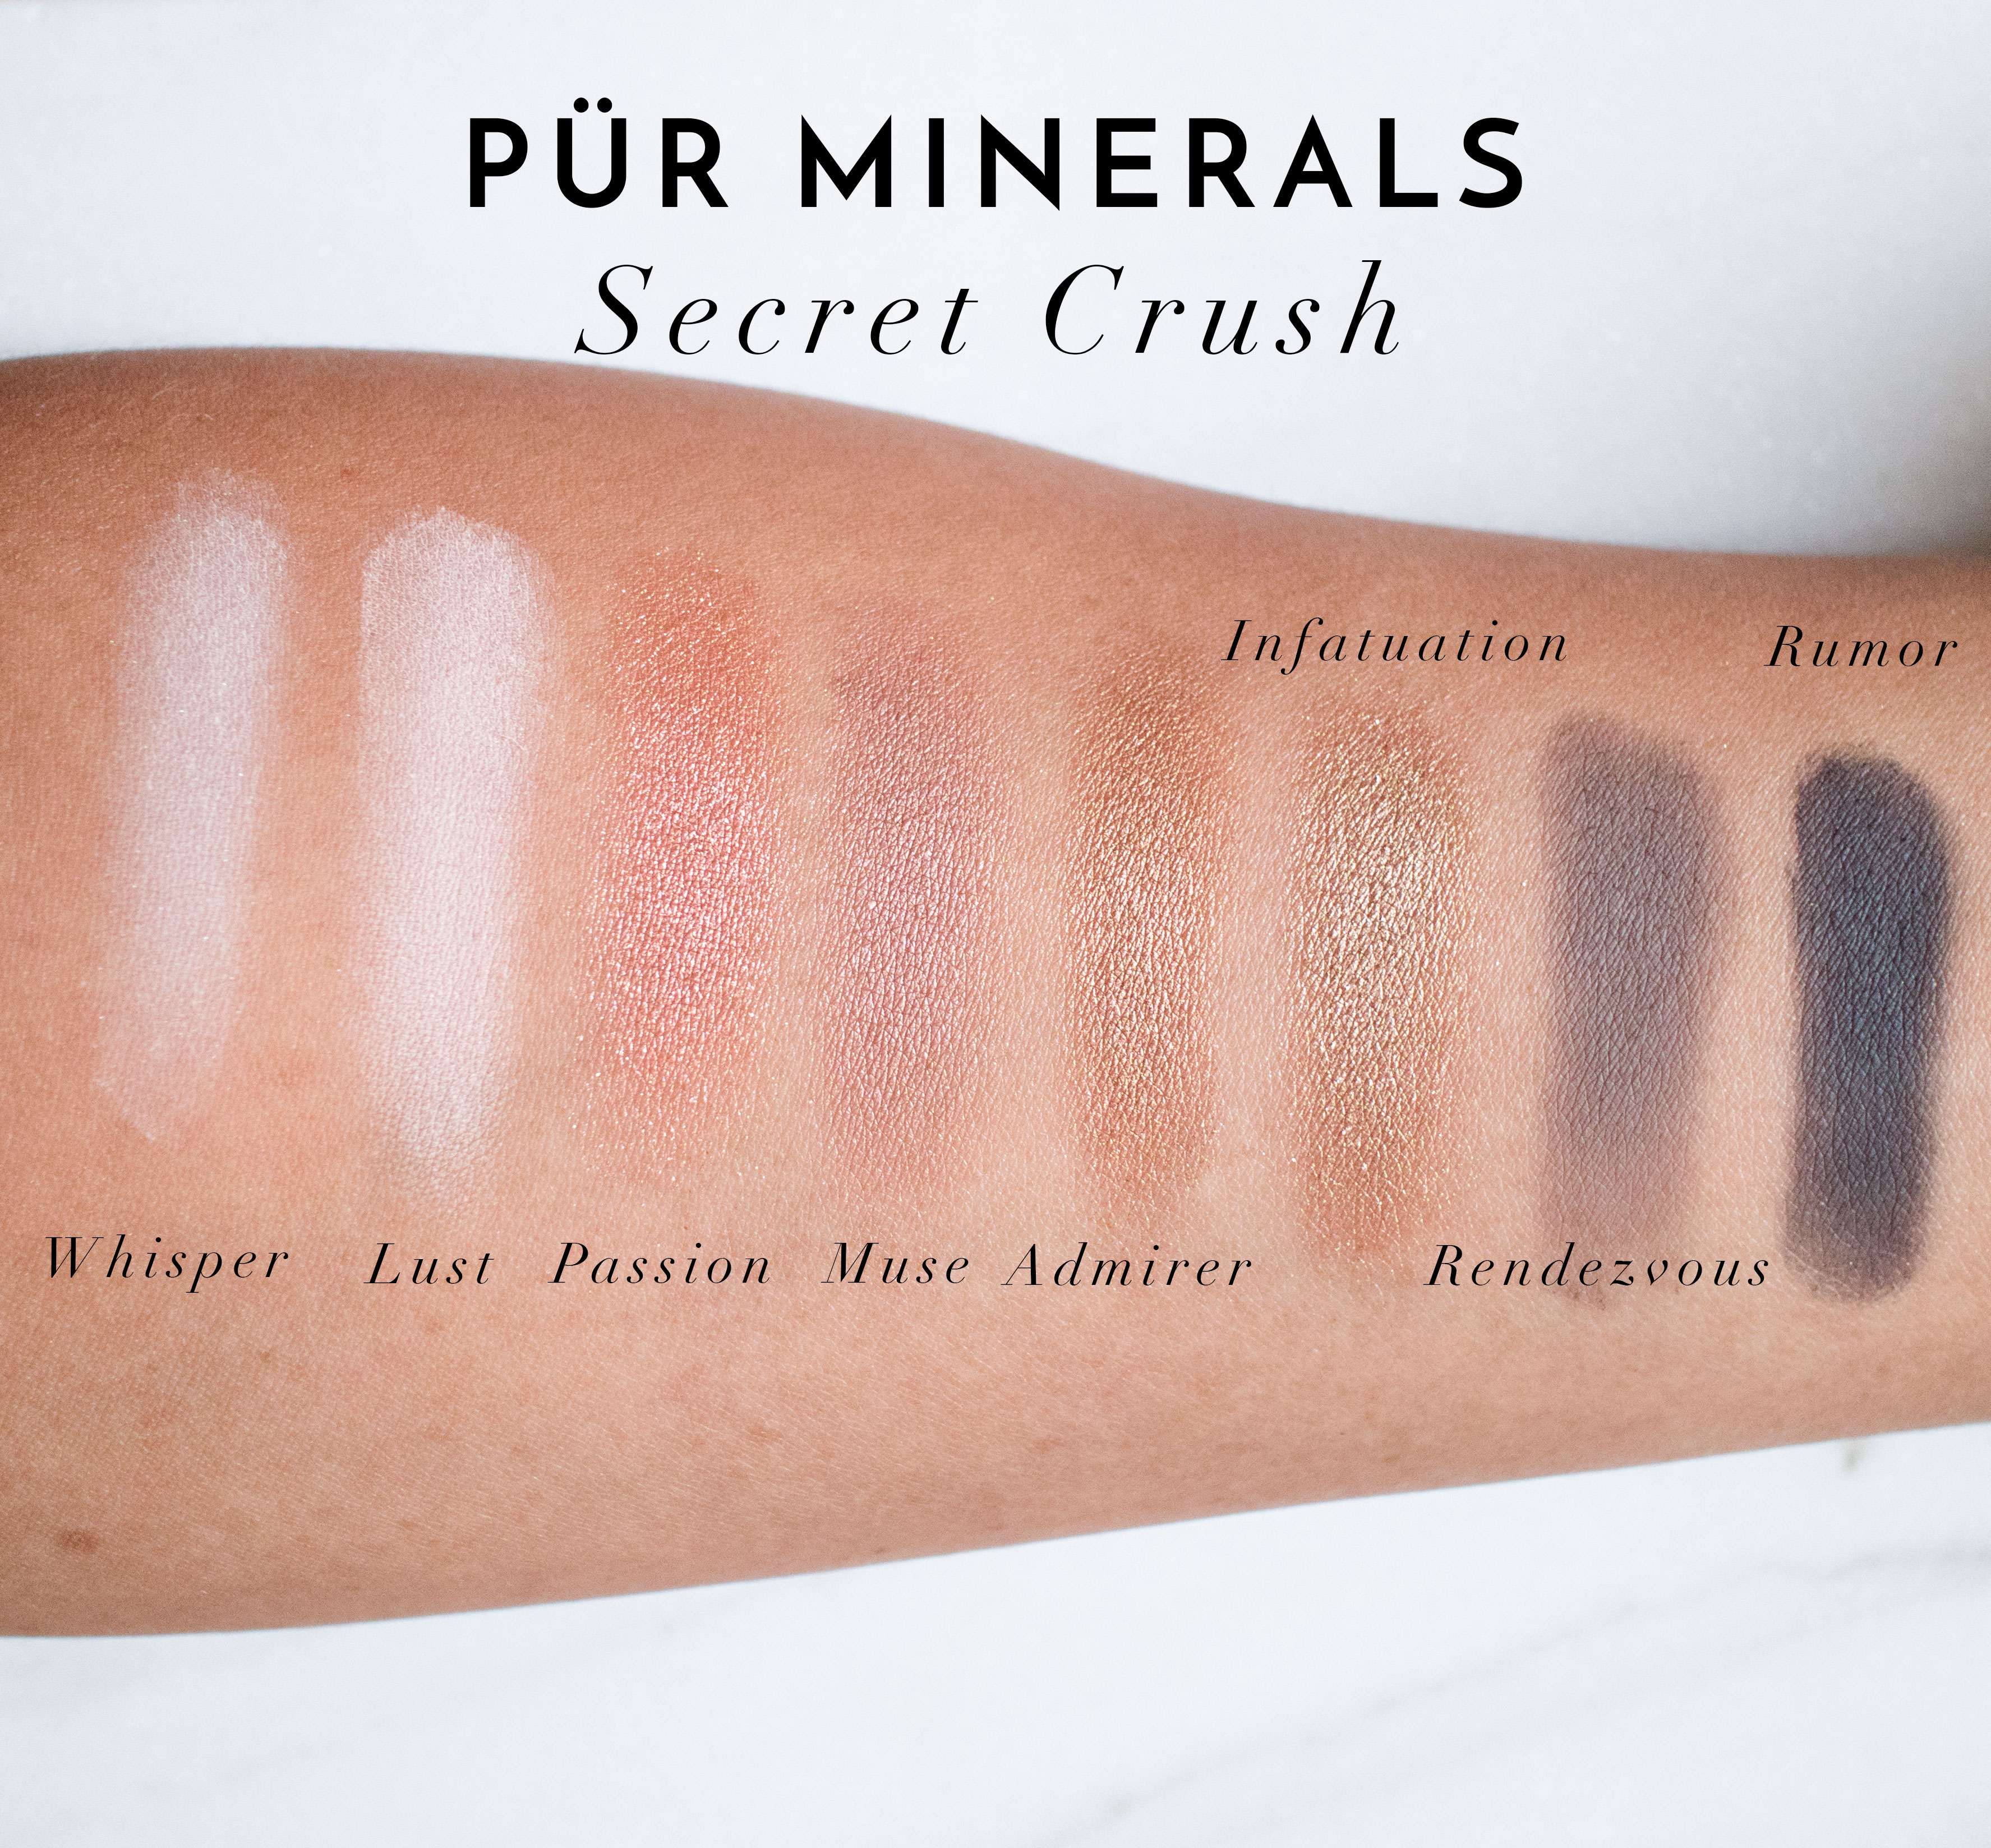 The Beauty Vanity | Pur Minerals Secret Crush Swatches Review